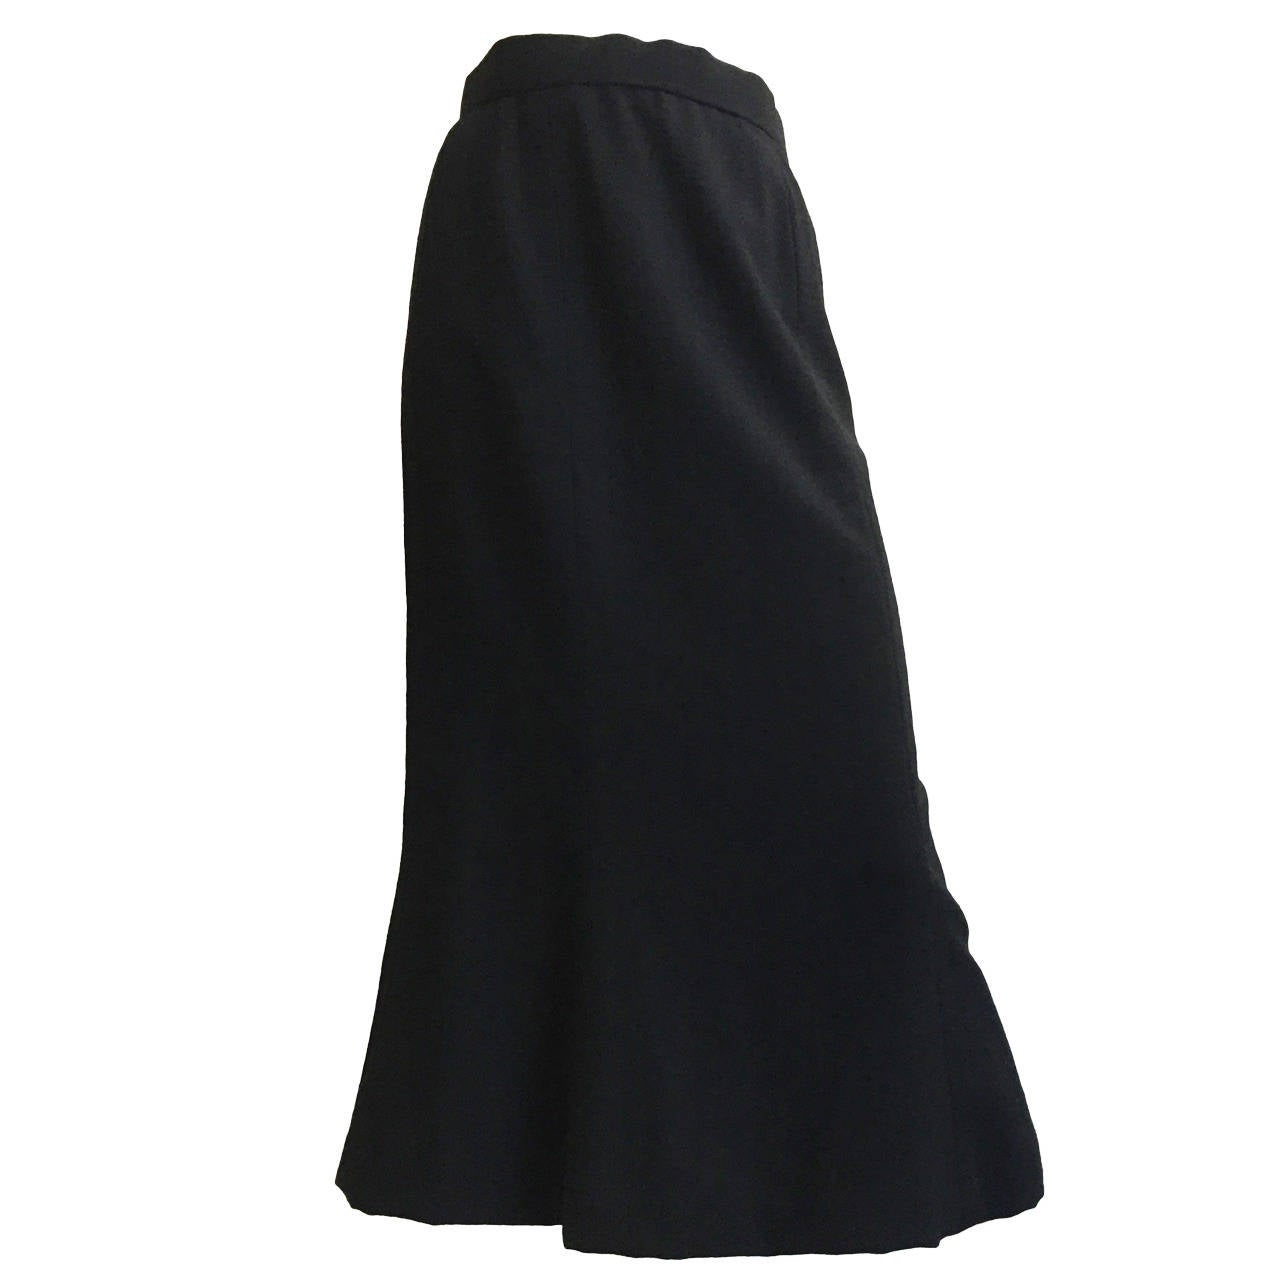 Bill Blass Black Wool Long Skirt Size 4/6.